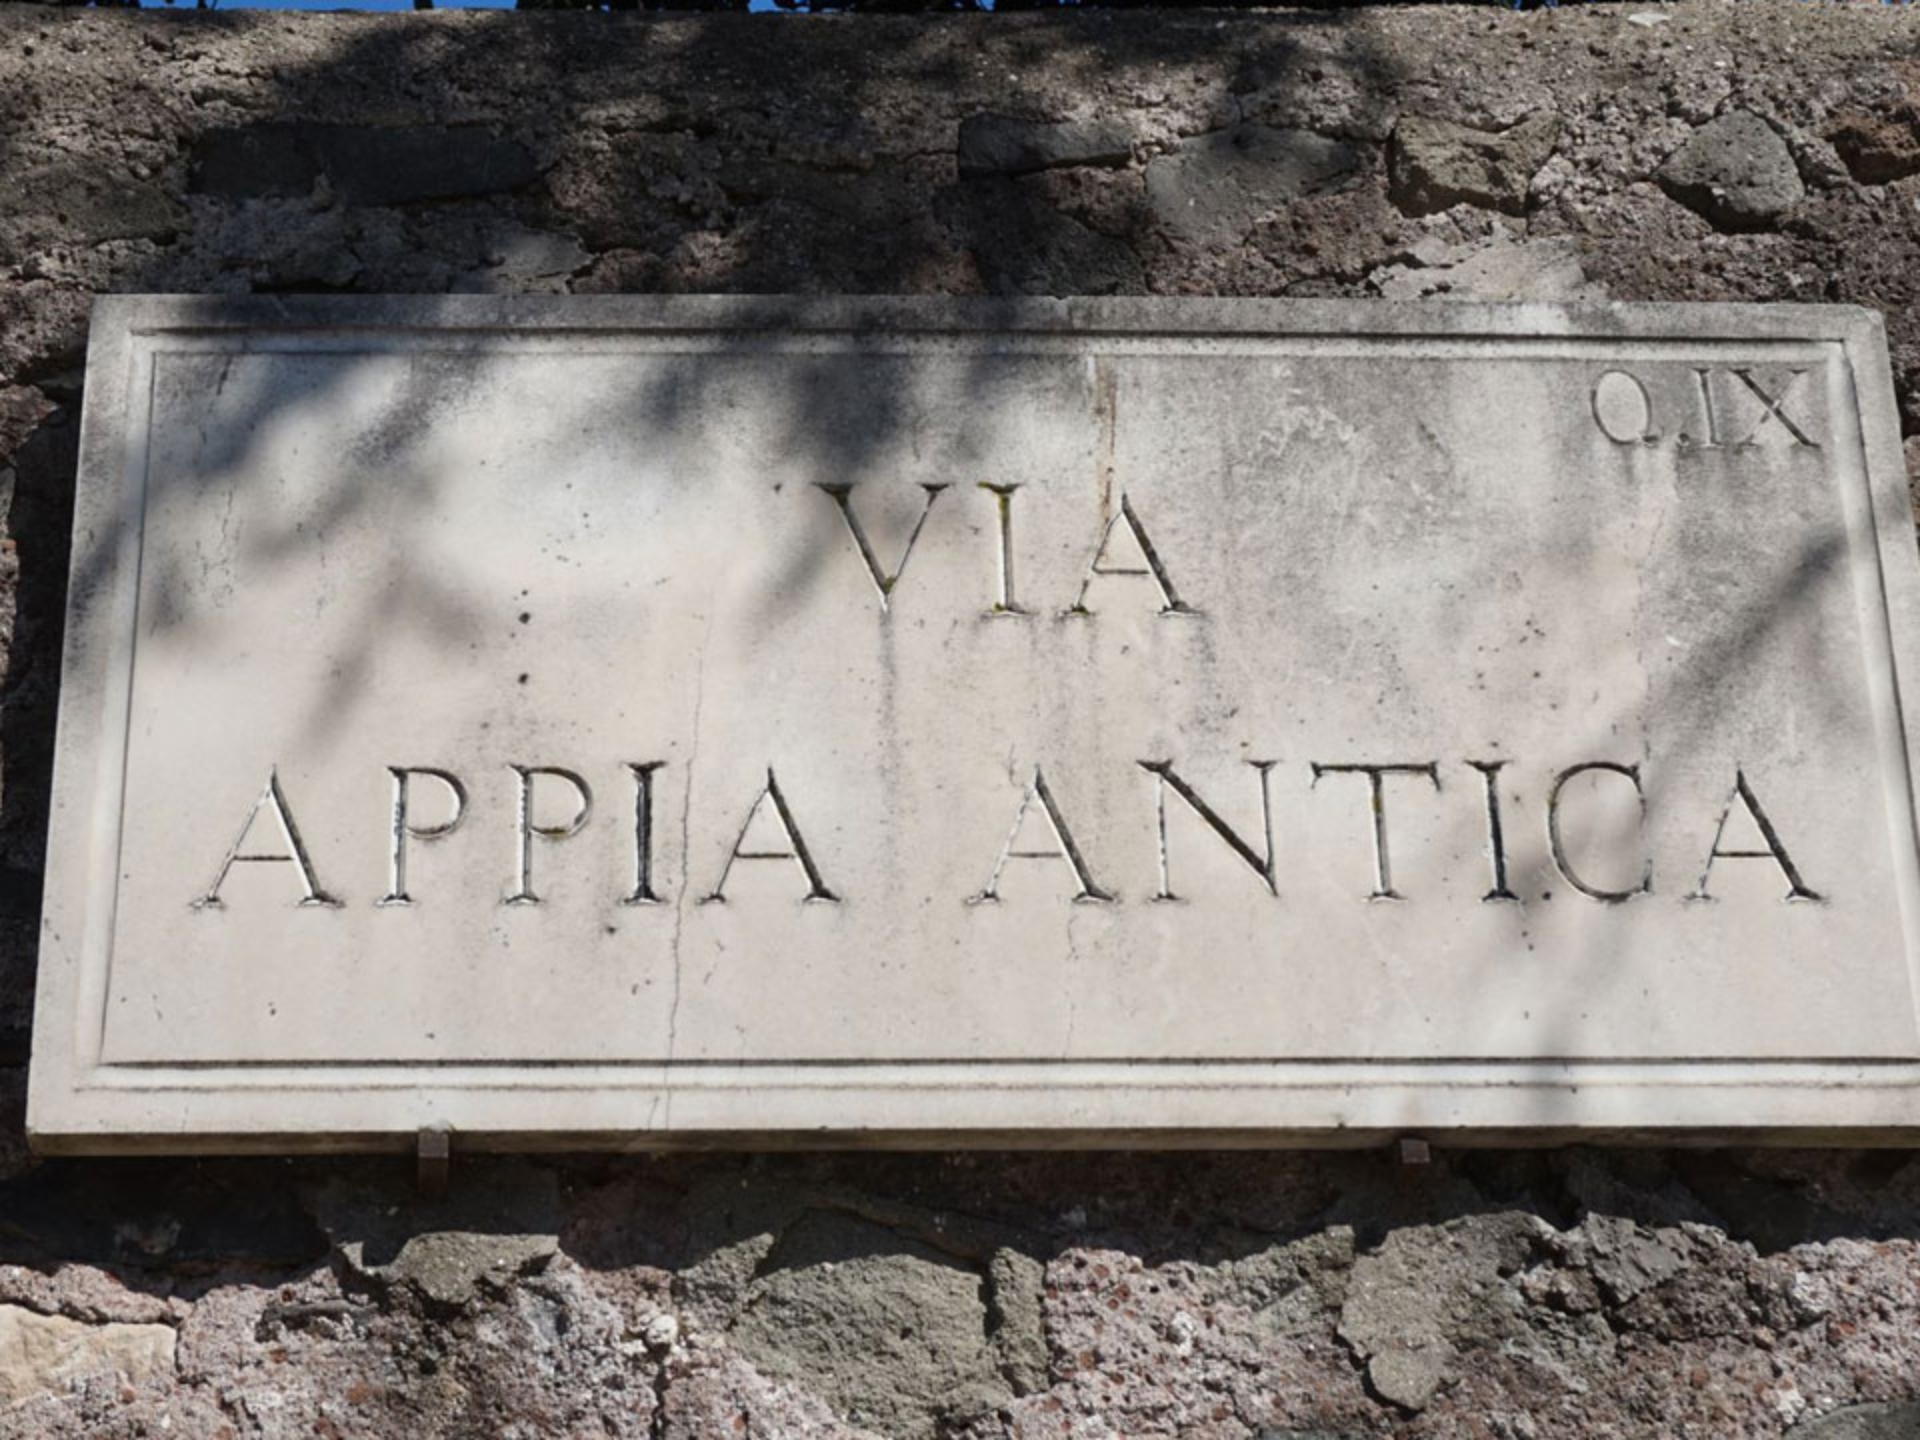 appian-way_Italy-Tour-With-Theresa_02